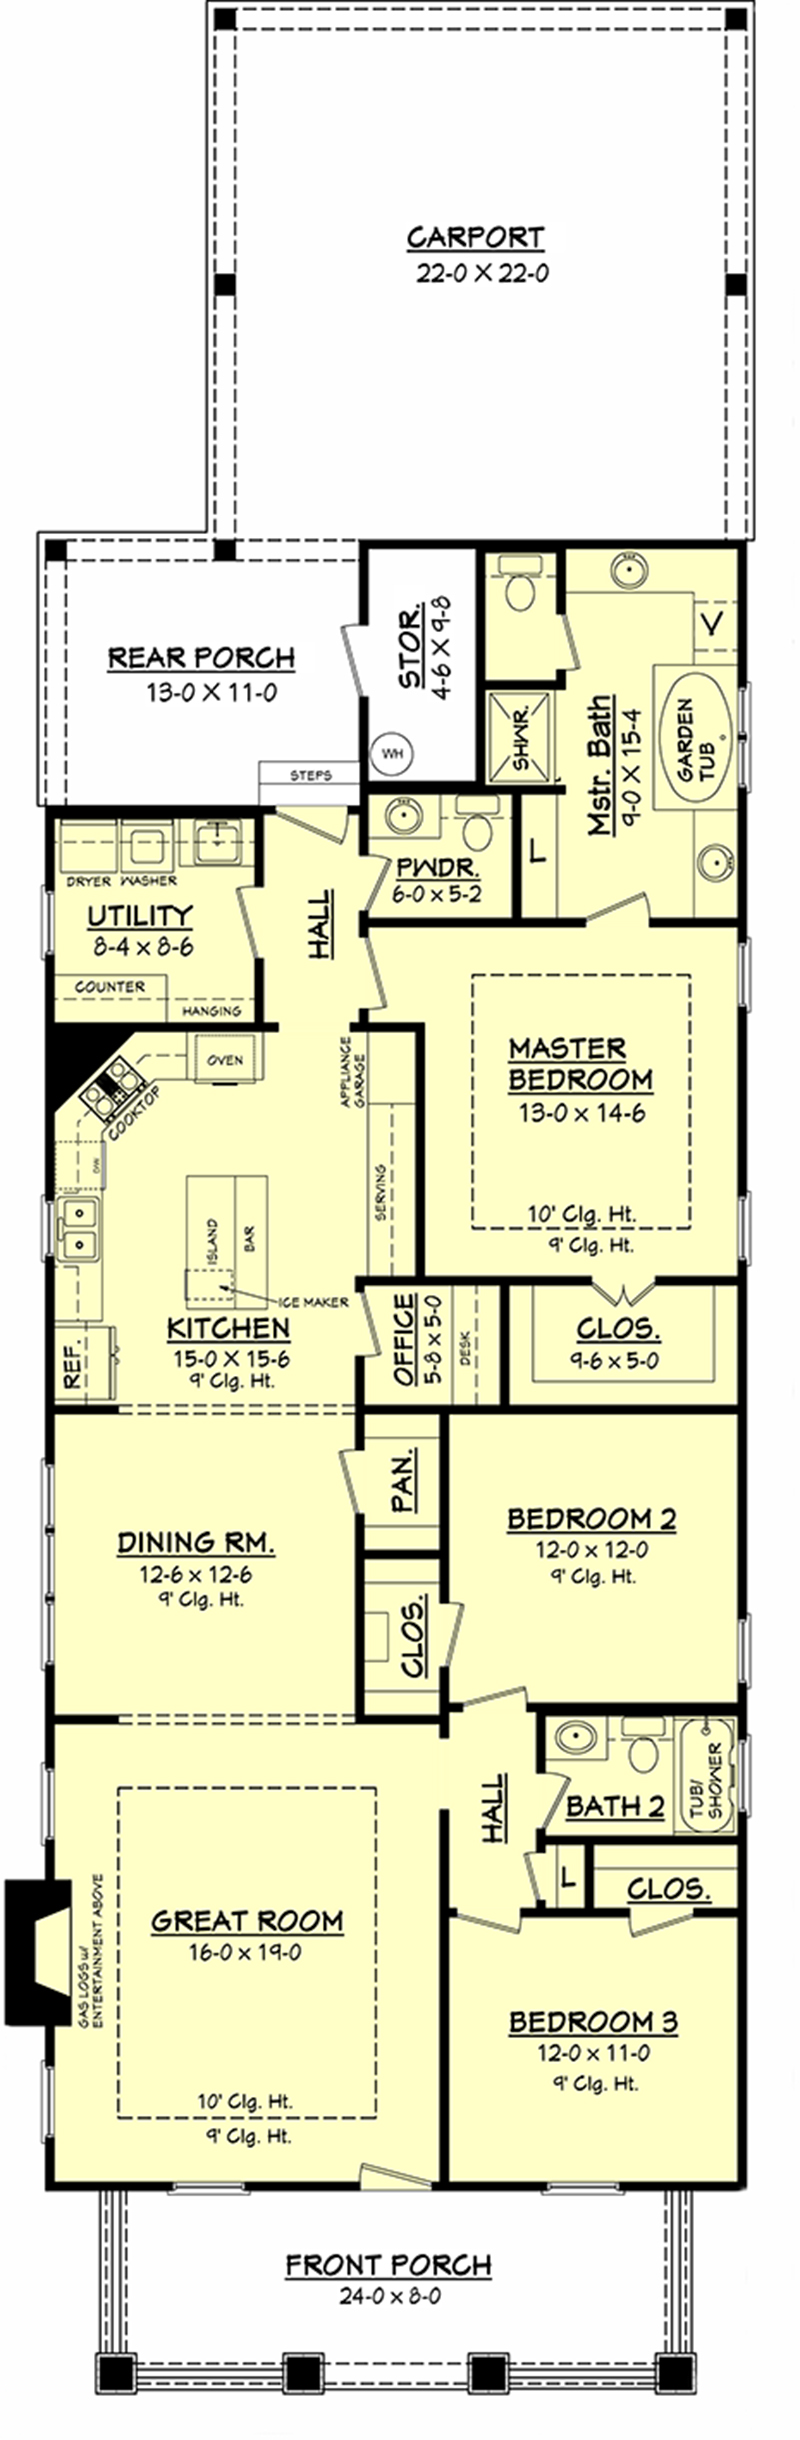 House plan 142 1079 3 bdrm 2 1 2 bath 1800 sq ft 1 and 1 2 story floor plans